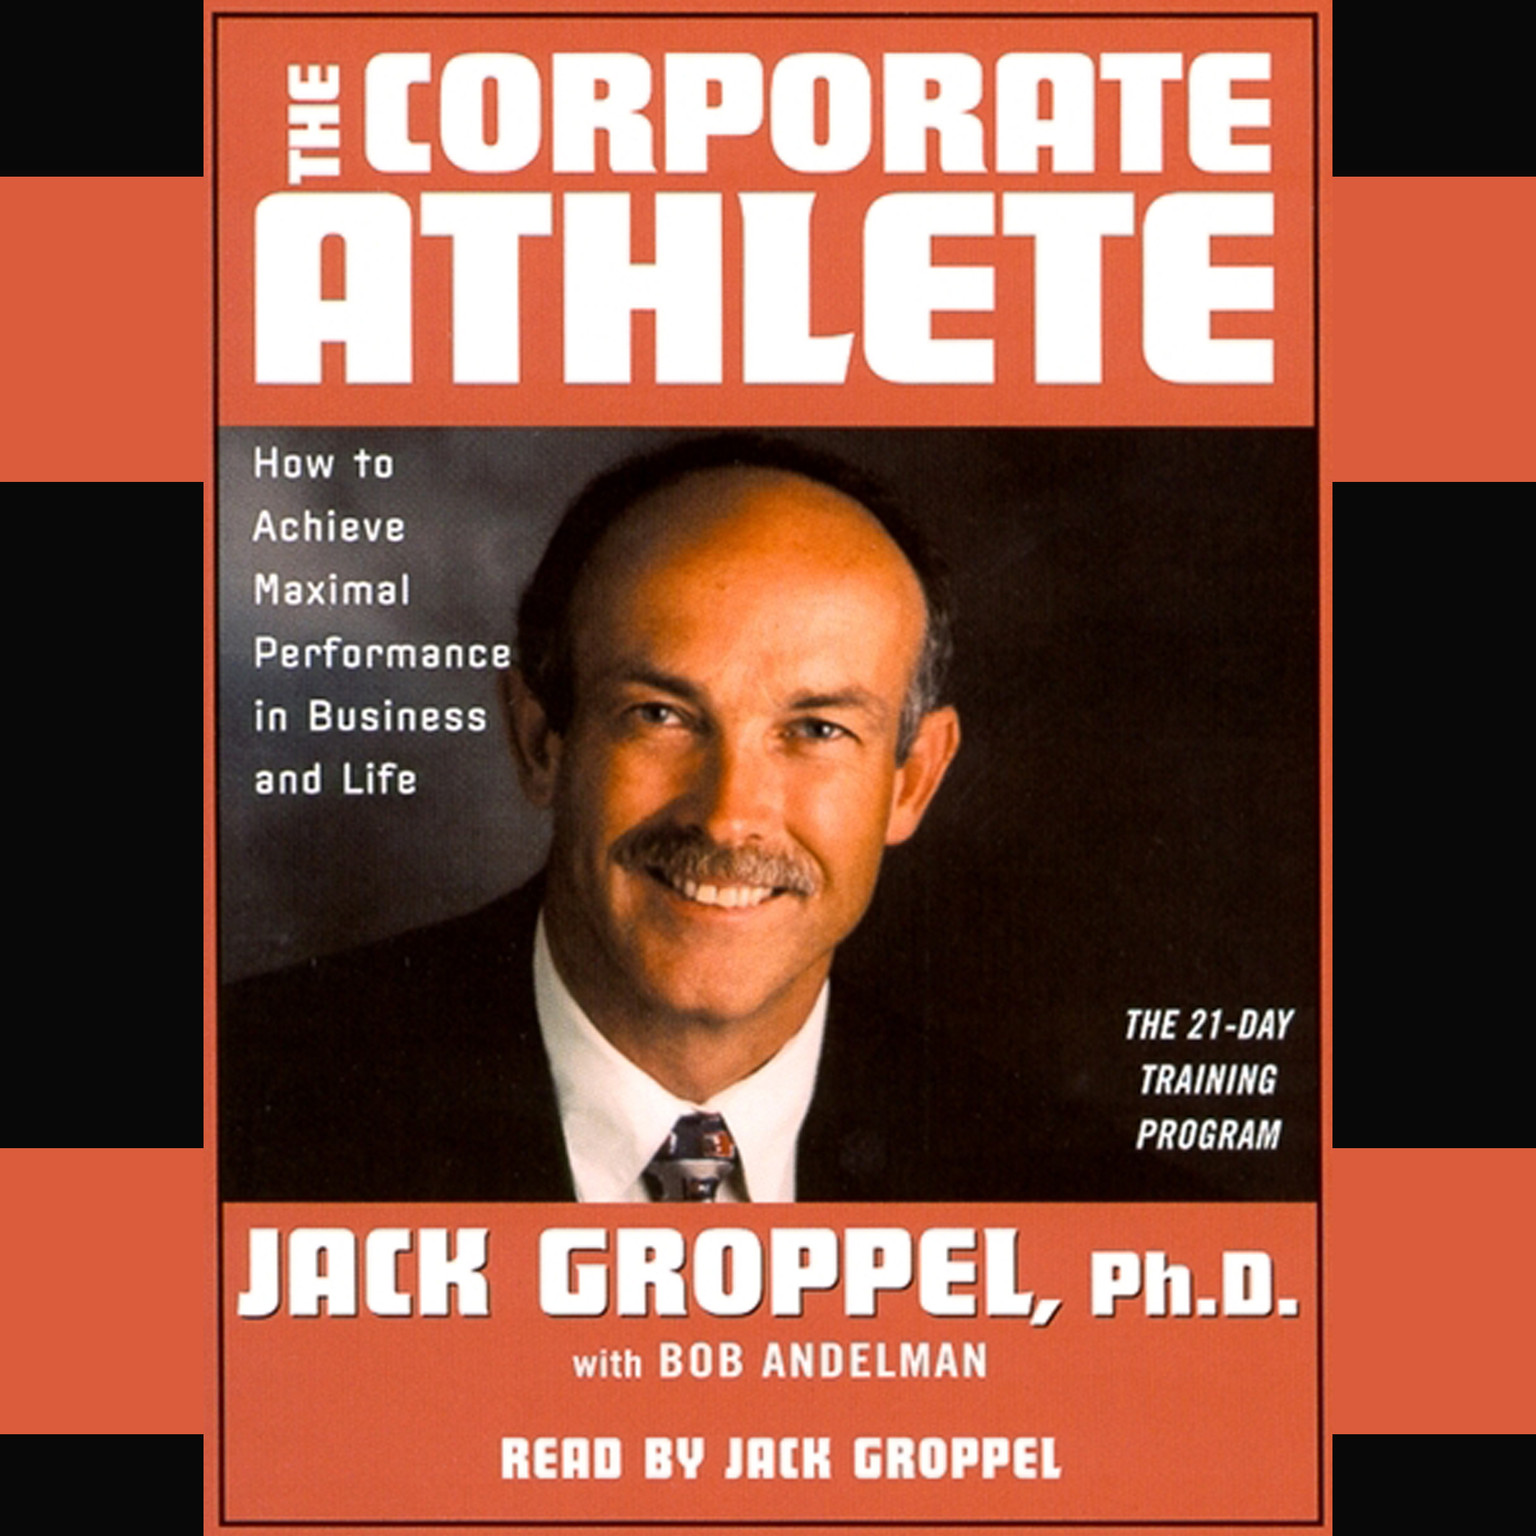 Printable The Corporate Athlete (Abridged): How to Achieve Maximal Performance in Business and Life Audiobook Cover Art